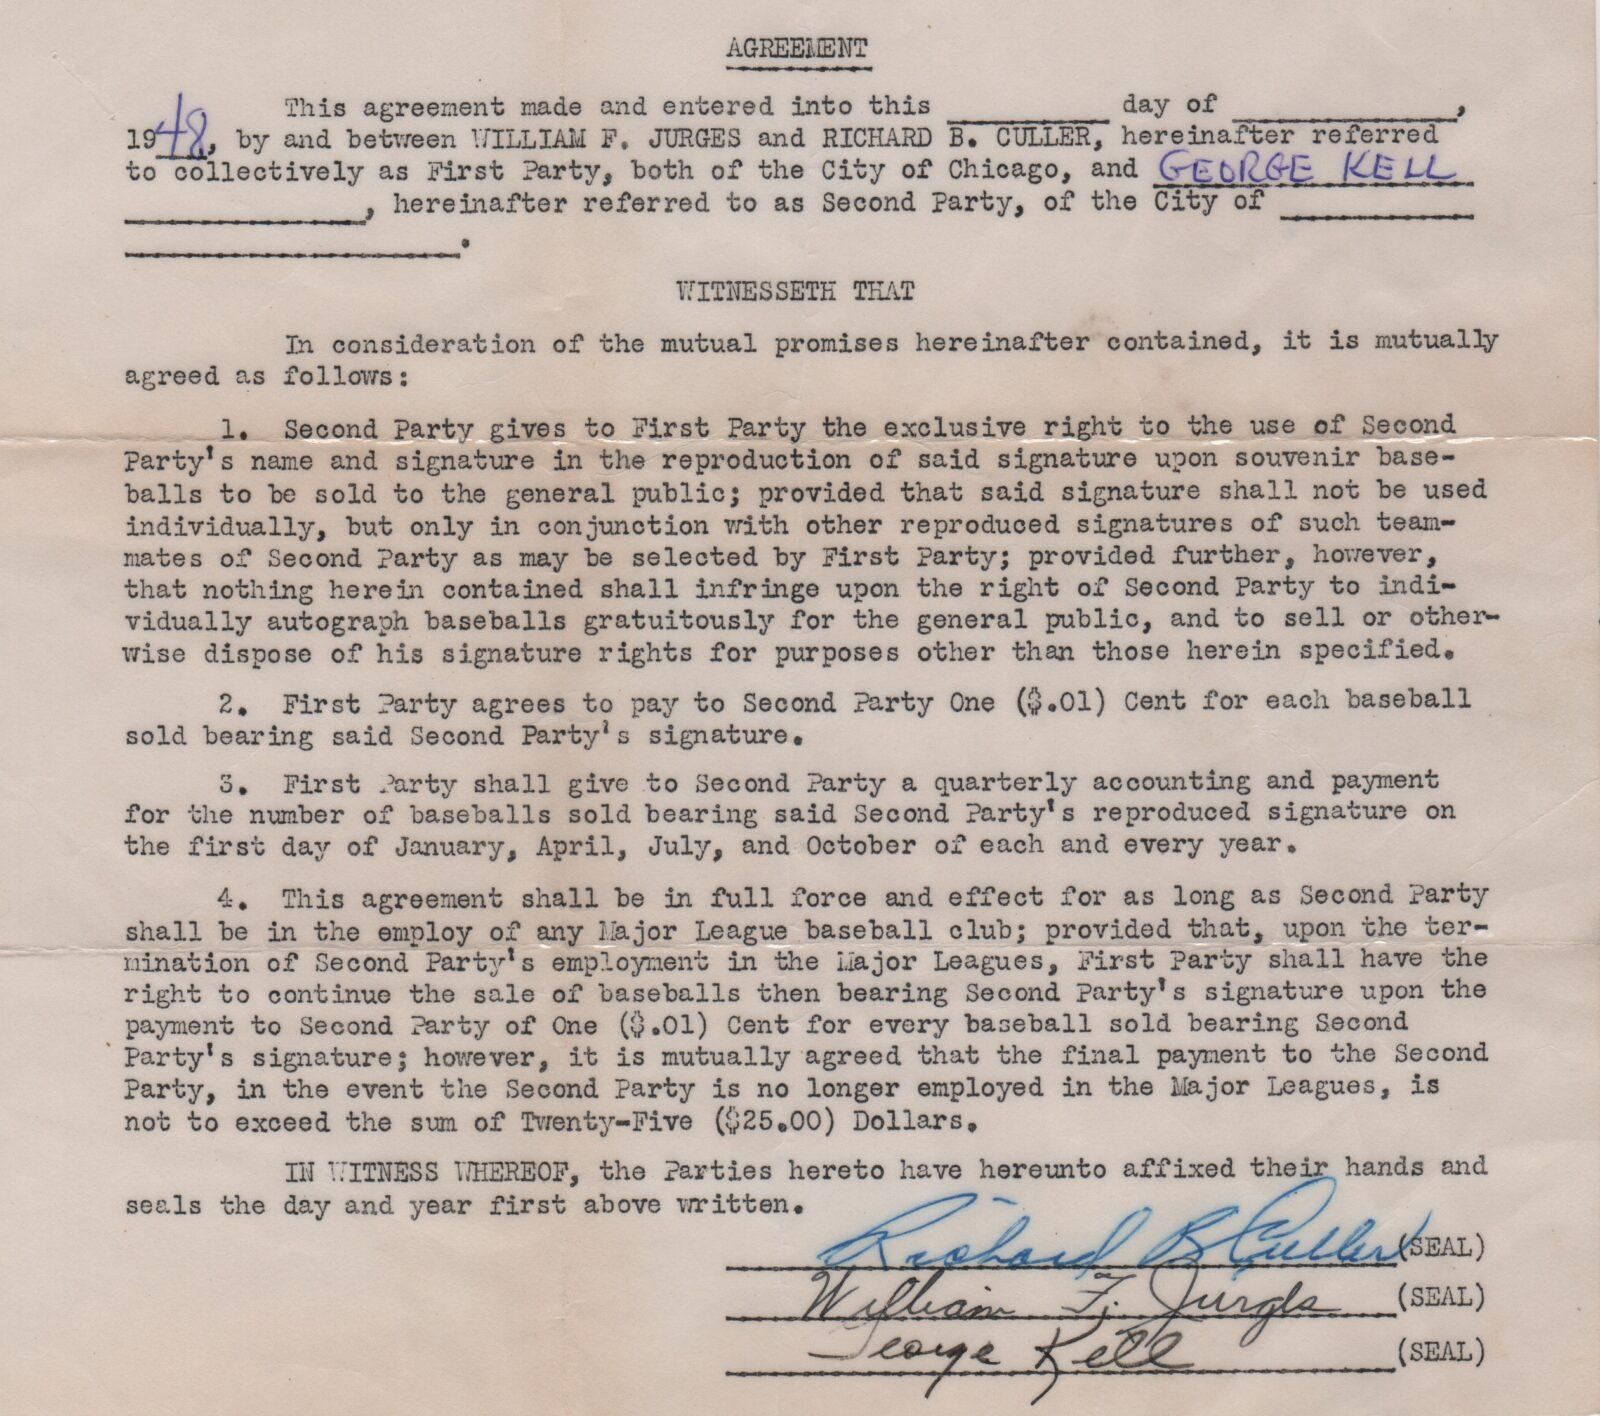 george kell cooperstown expert george kell autoball contract from 1948